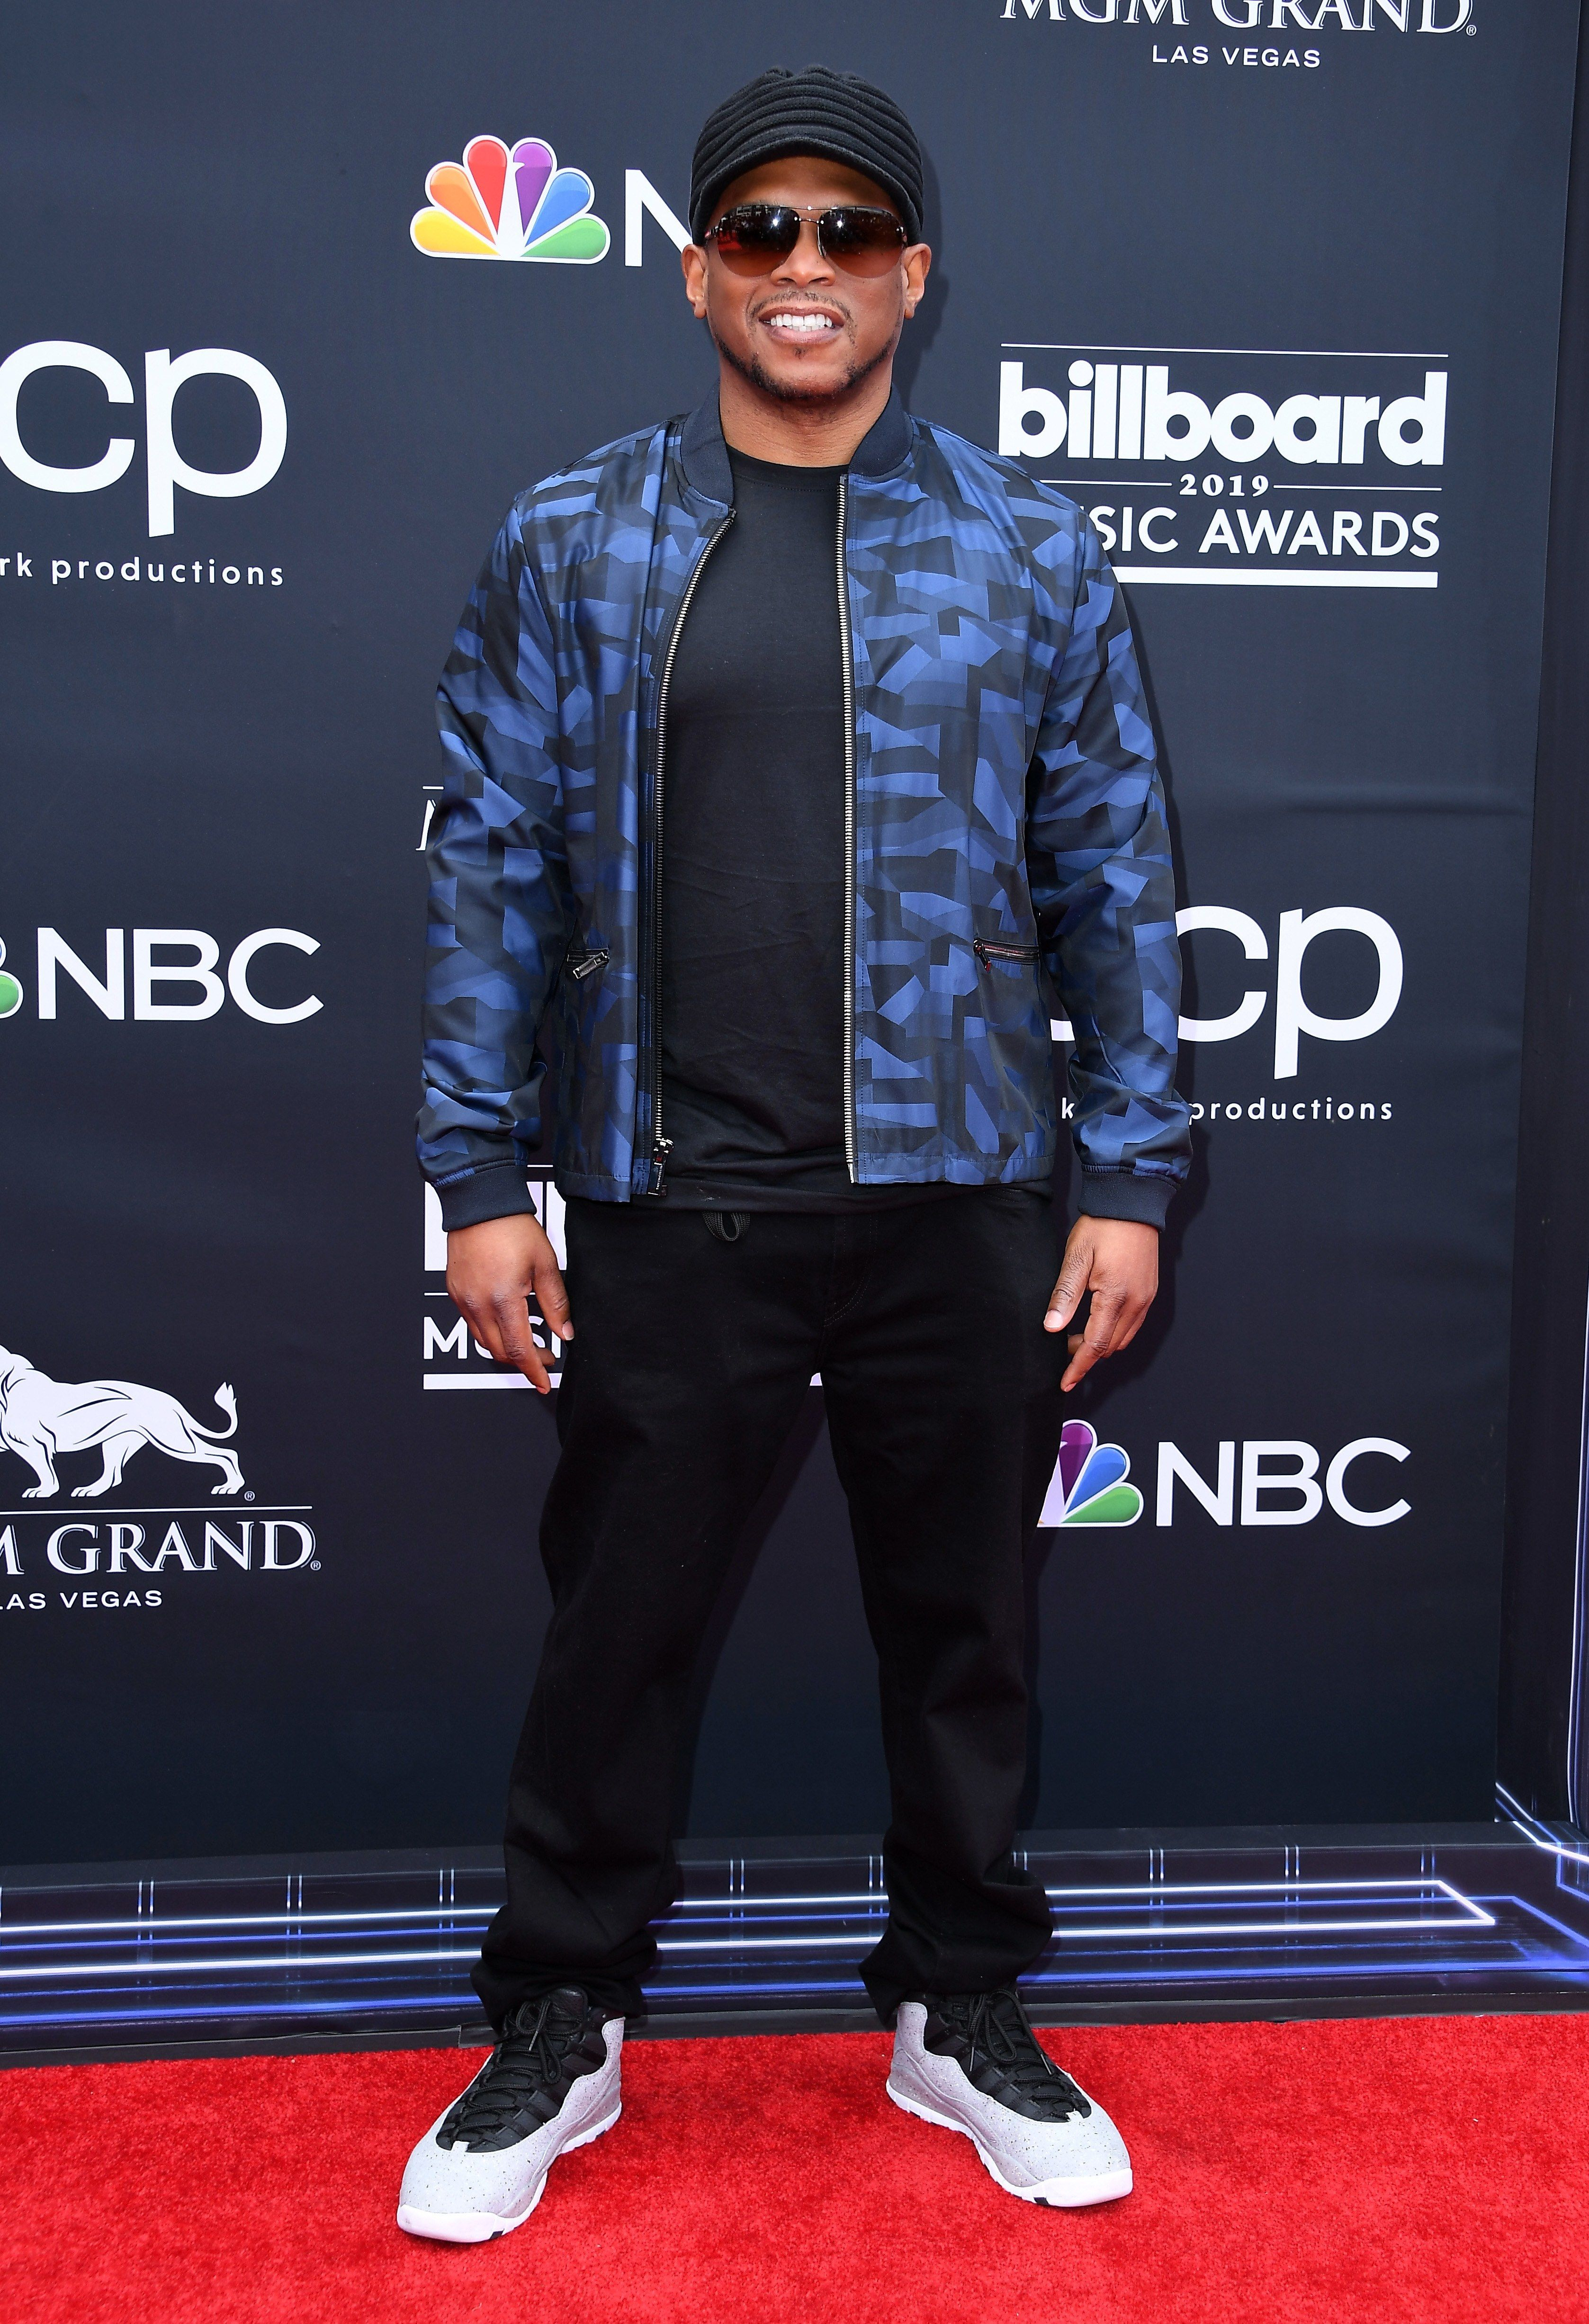 Billboard Music Awards 2019 Fashion Live From The Red Carpet In